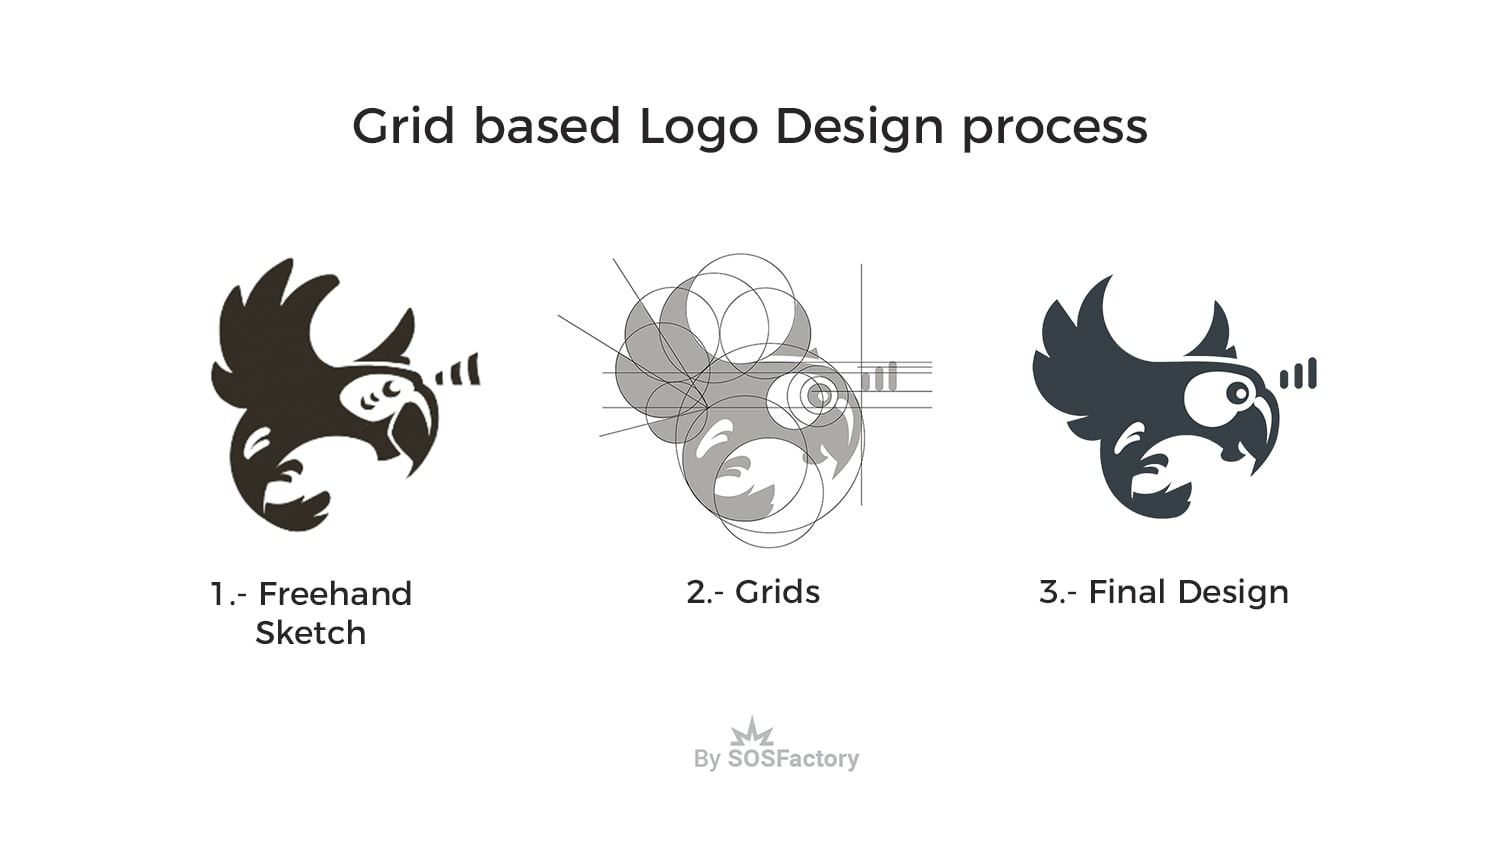 my grid based logo design-workflow